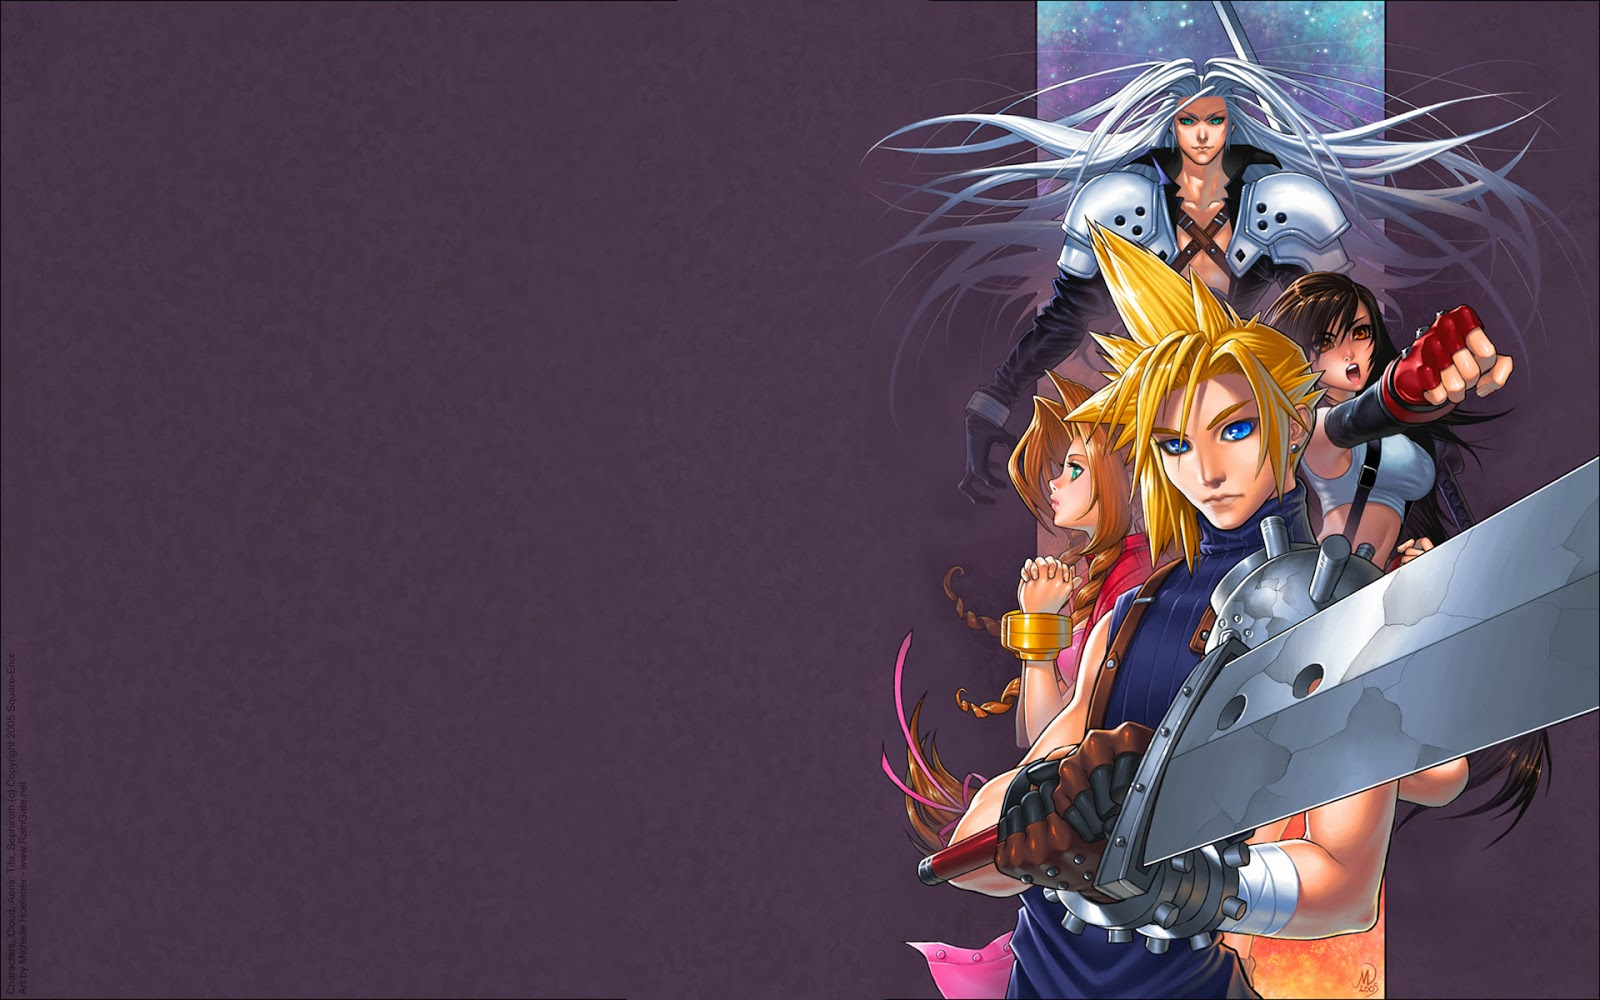 Final fantsy vii ultimate guide free final fantasy 7 wallpaper 01 free final fantasy 7 wallpaper 01 altavistaventures Gallery